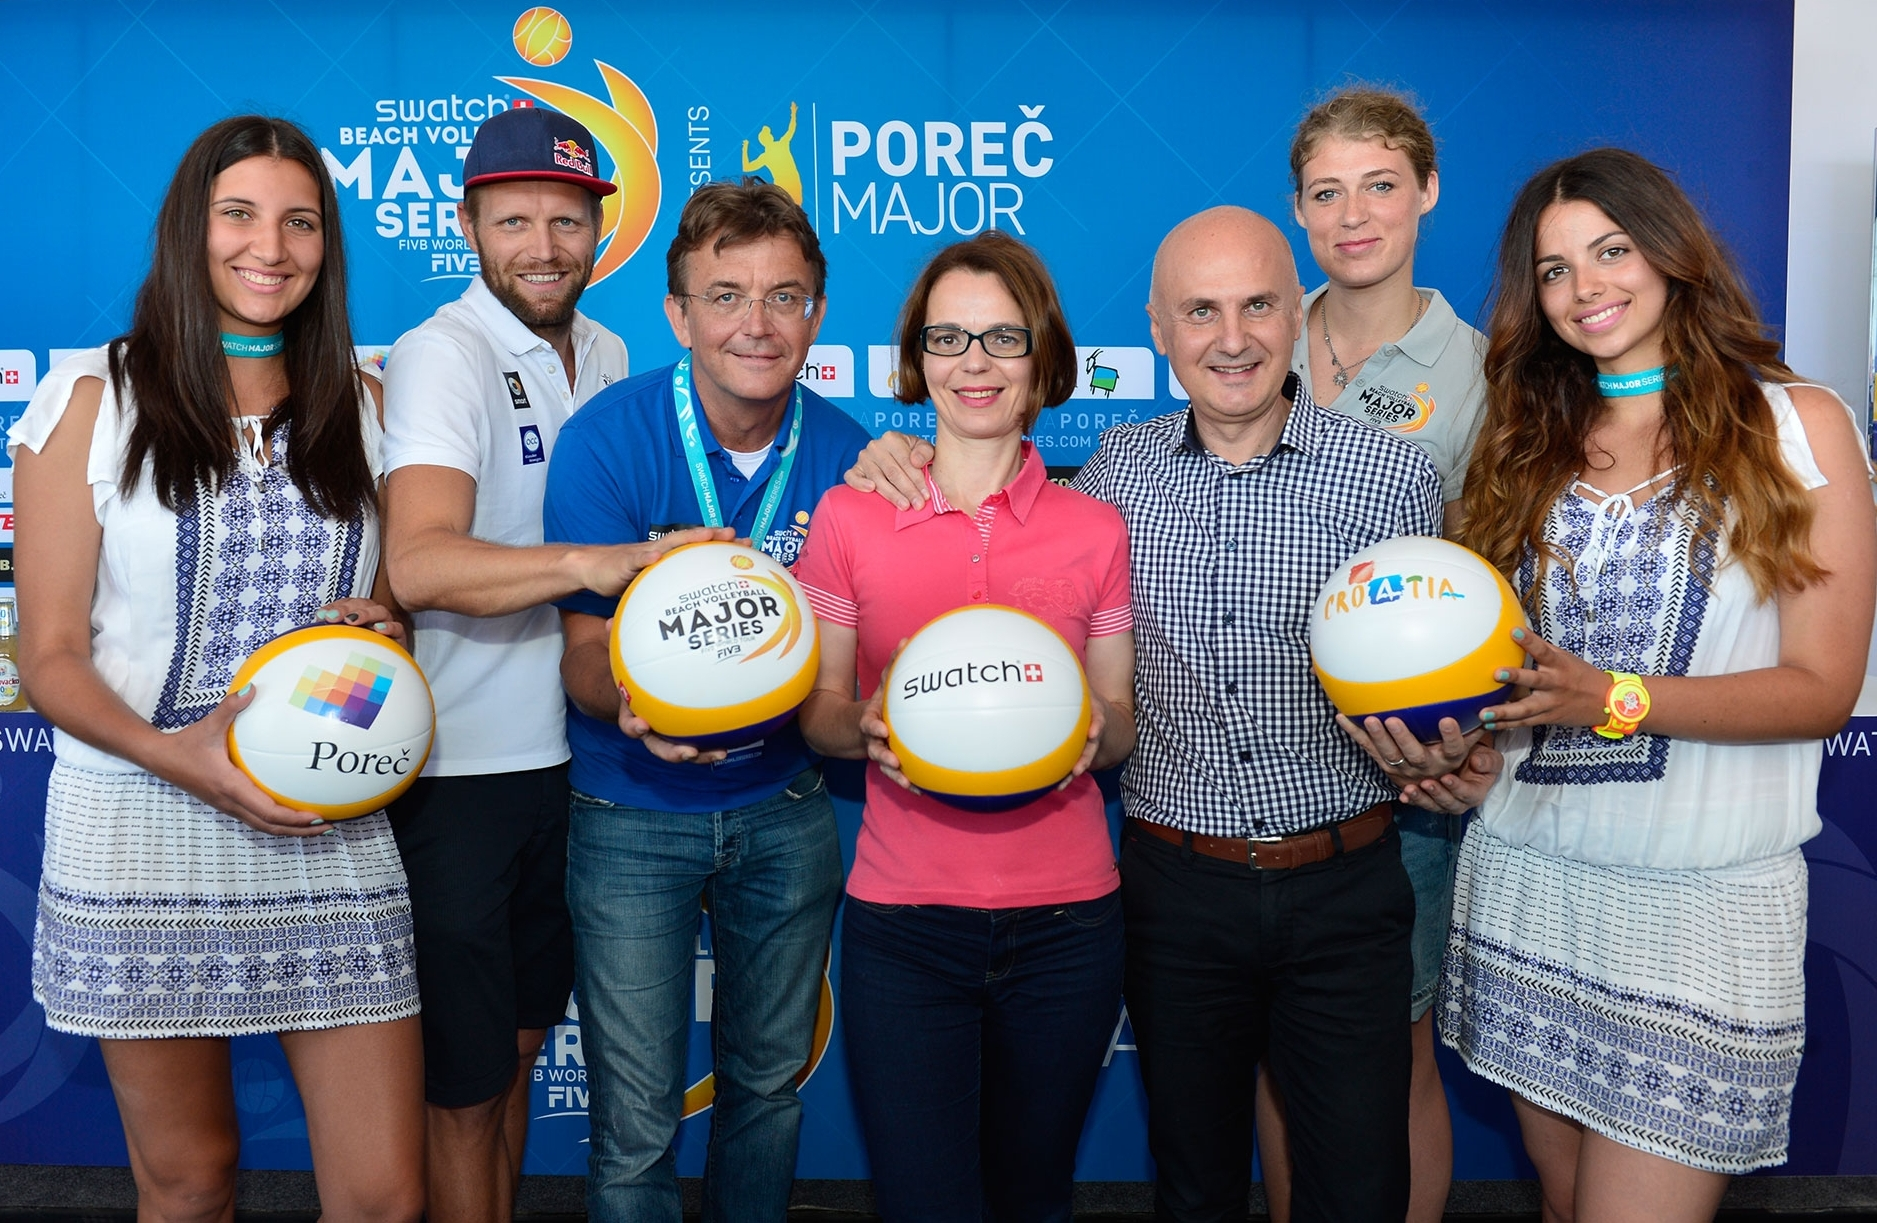 (Left-to-right) Julius Brink (London 2012 Olympic Gold Medalists), Hannes Jagerhofer (CEO Beach Majors), Nadia Stifanic Dobrilovic (Deputy of the City of Porec), Nenad Velenik (Director of Porec Tourist Board), Samanta Fabris (Croatian beach volleyball player). Photocredit: Bernhard Horst.